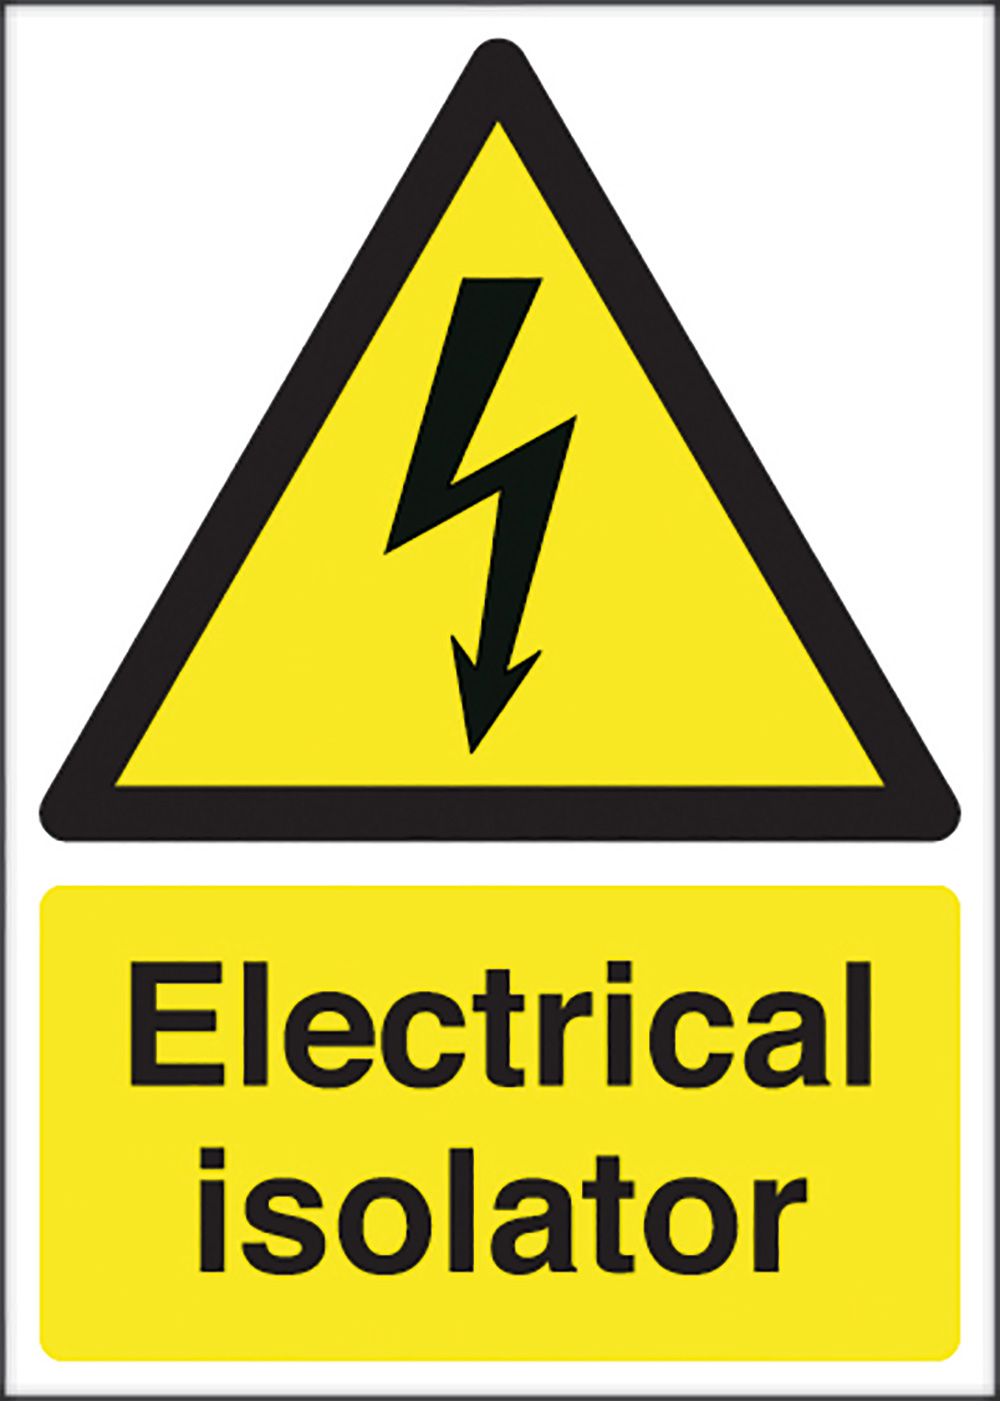 Electrical Isolator   210x148mm 1.2mm Rigid Plastic Safety Sign